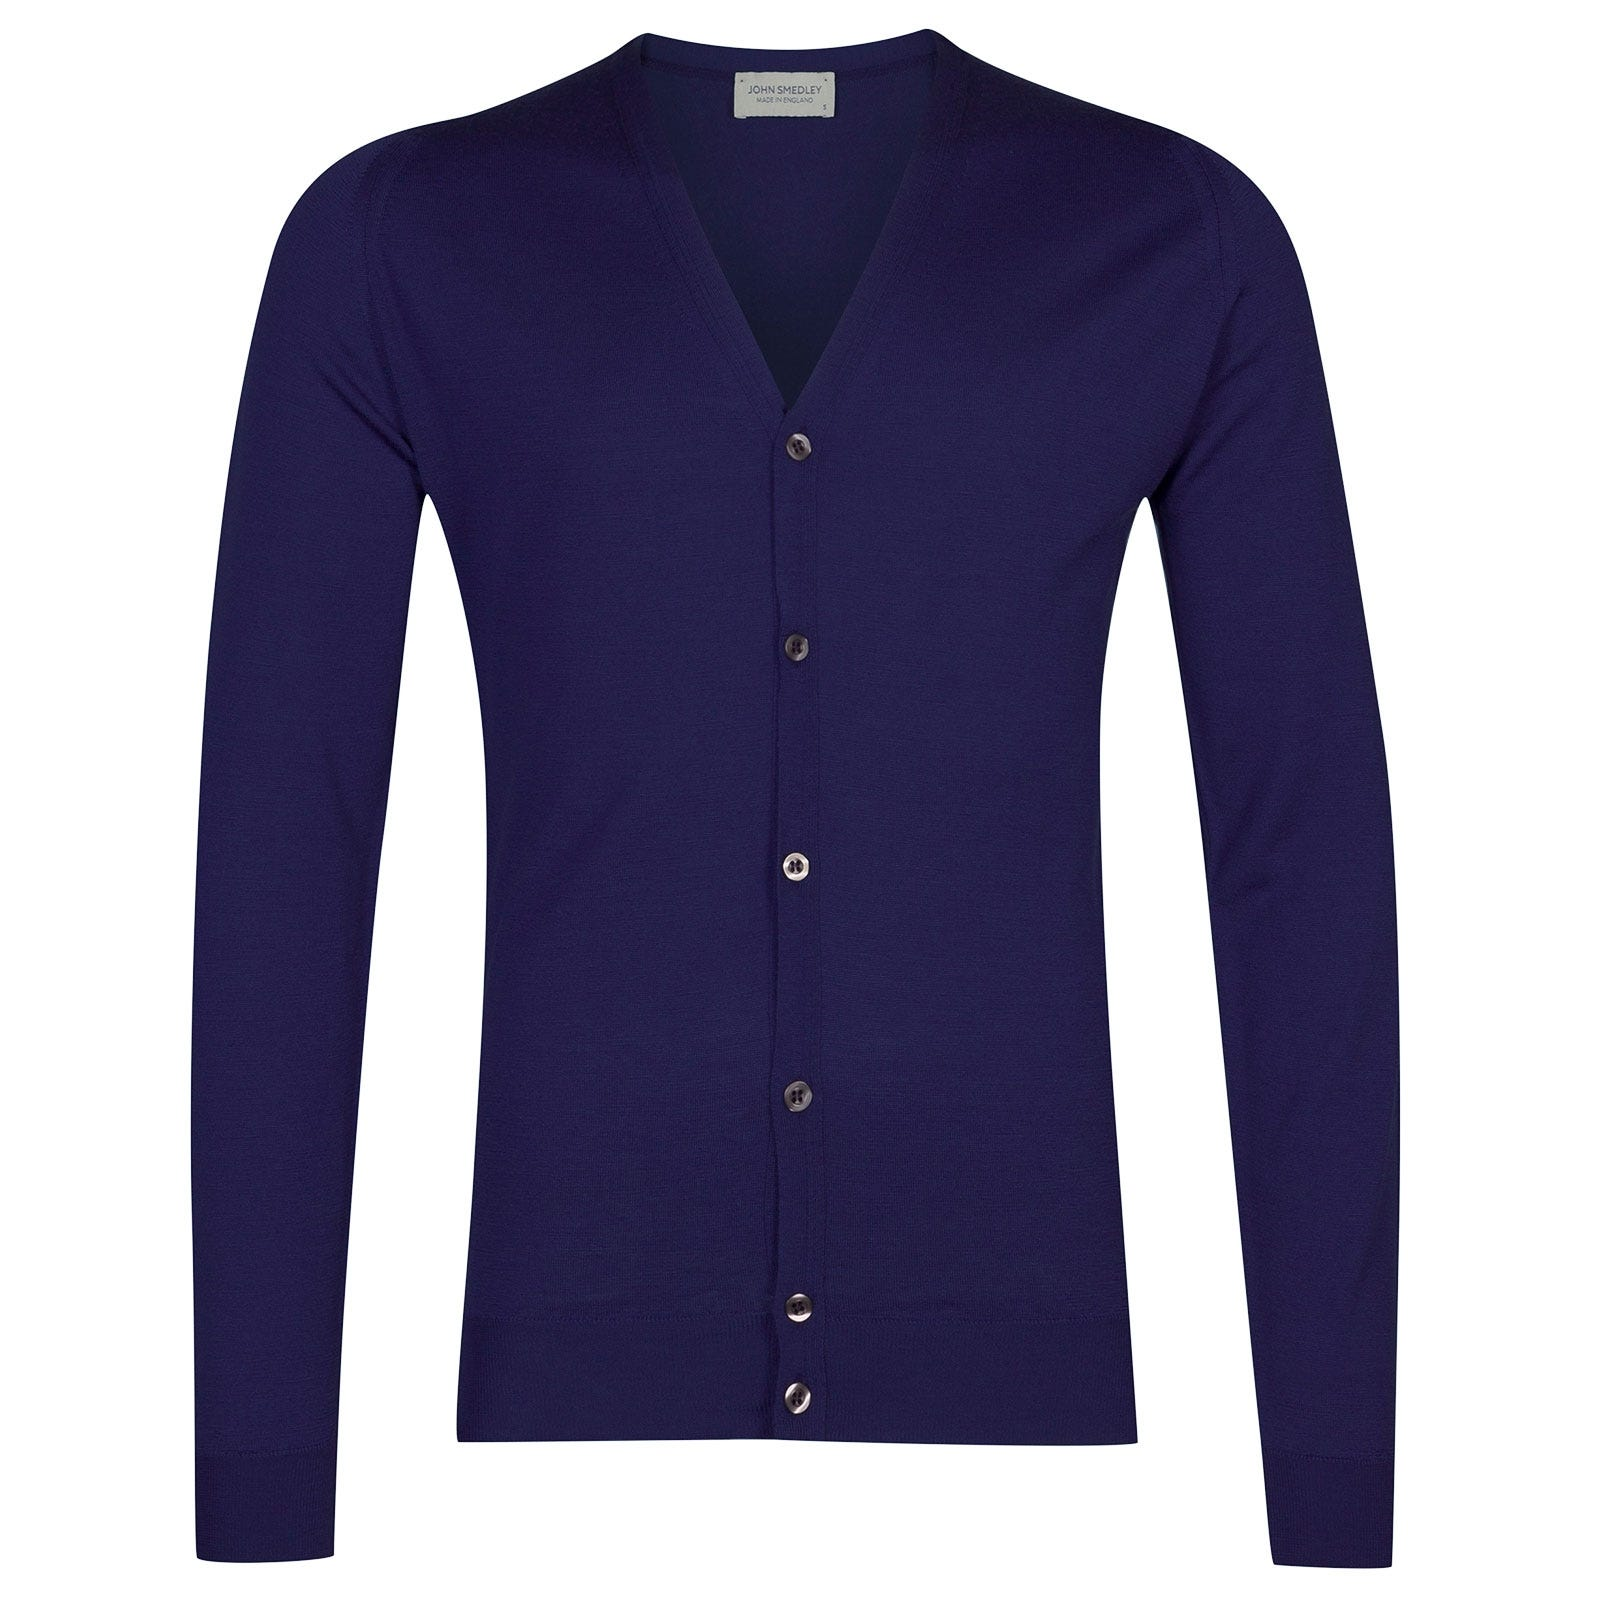 John Smedley Petworth Merino Wool Cardigan in Serge Blue-XXL